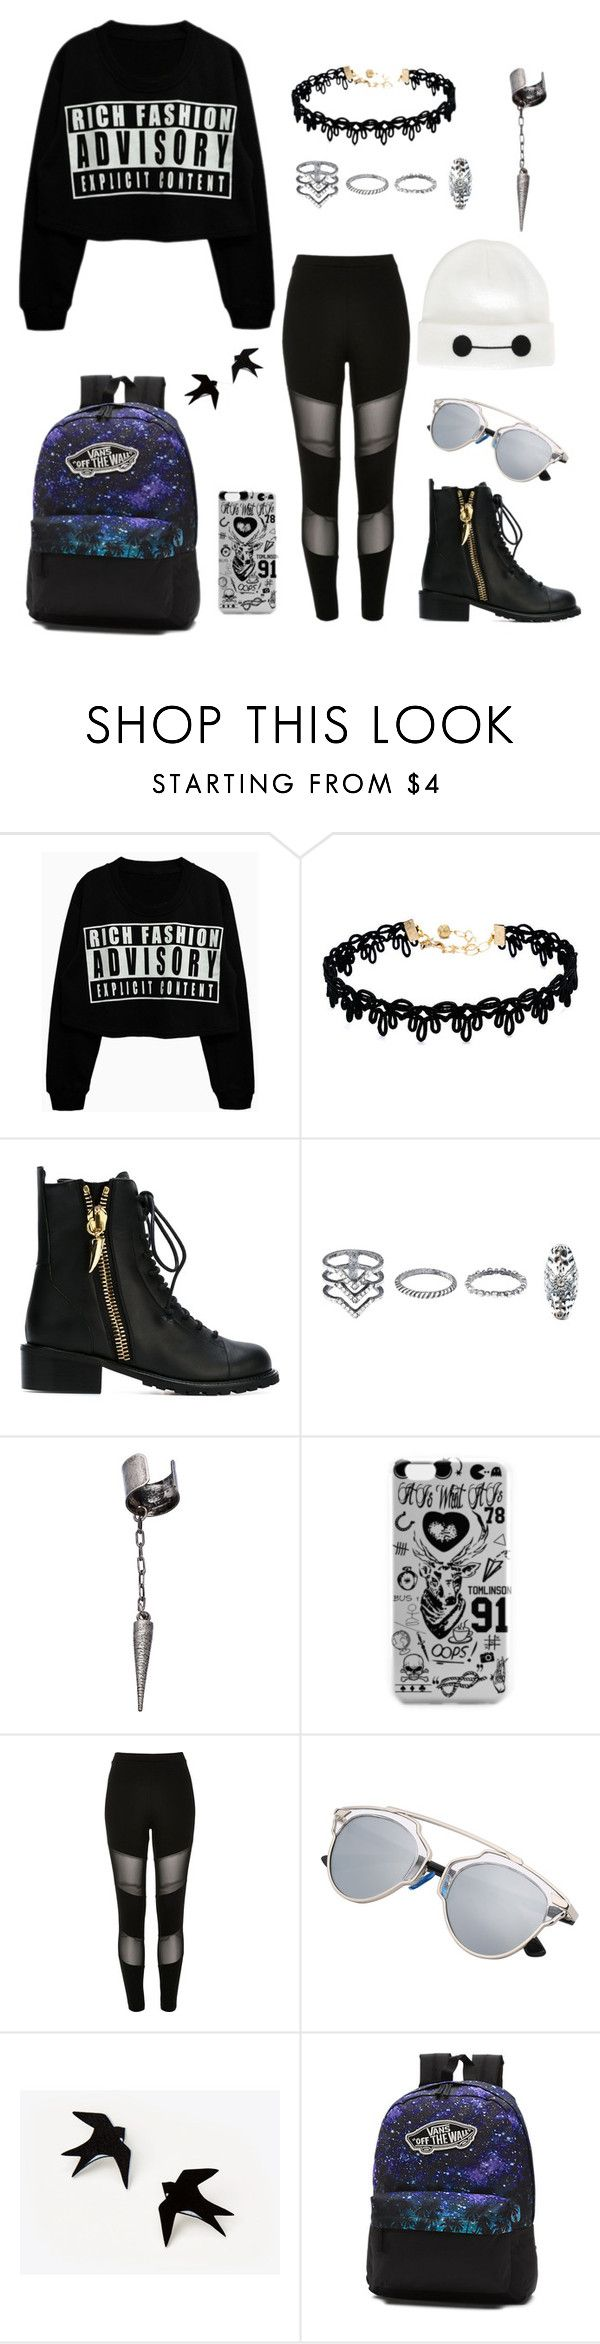 """""""Badass Outfit"""" by draw4me ❤ liked on Polyvore featuring Vanessa Mooney, Giuseppe Zanotti, New Look, Le Mos, River Island, Vans and Disney"""